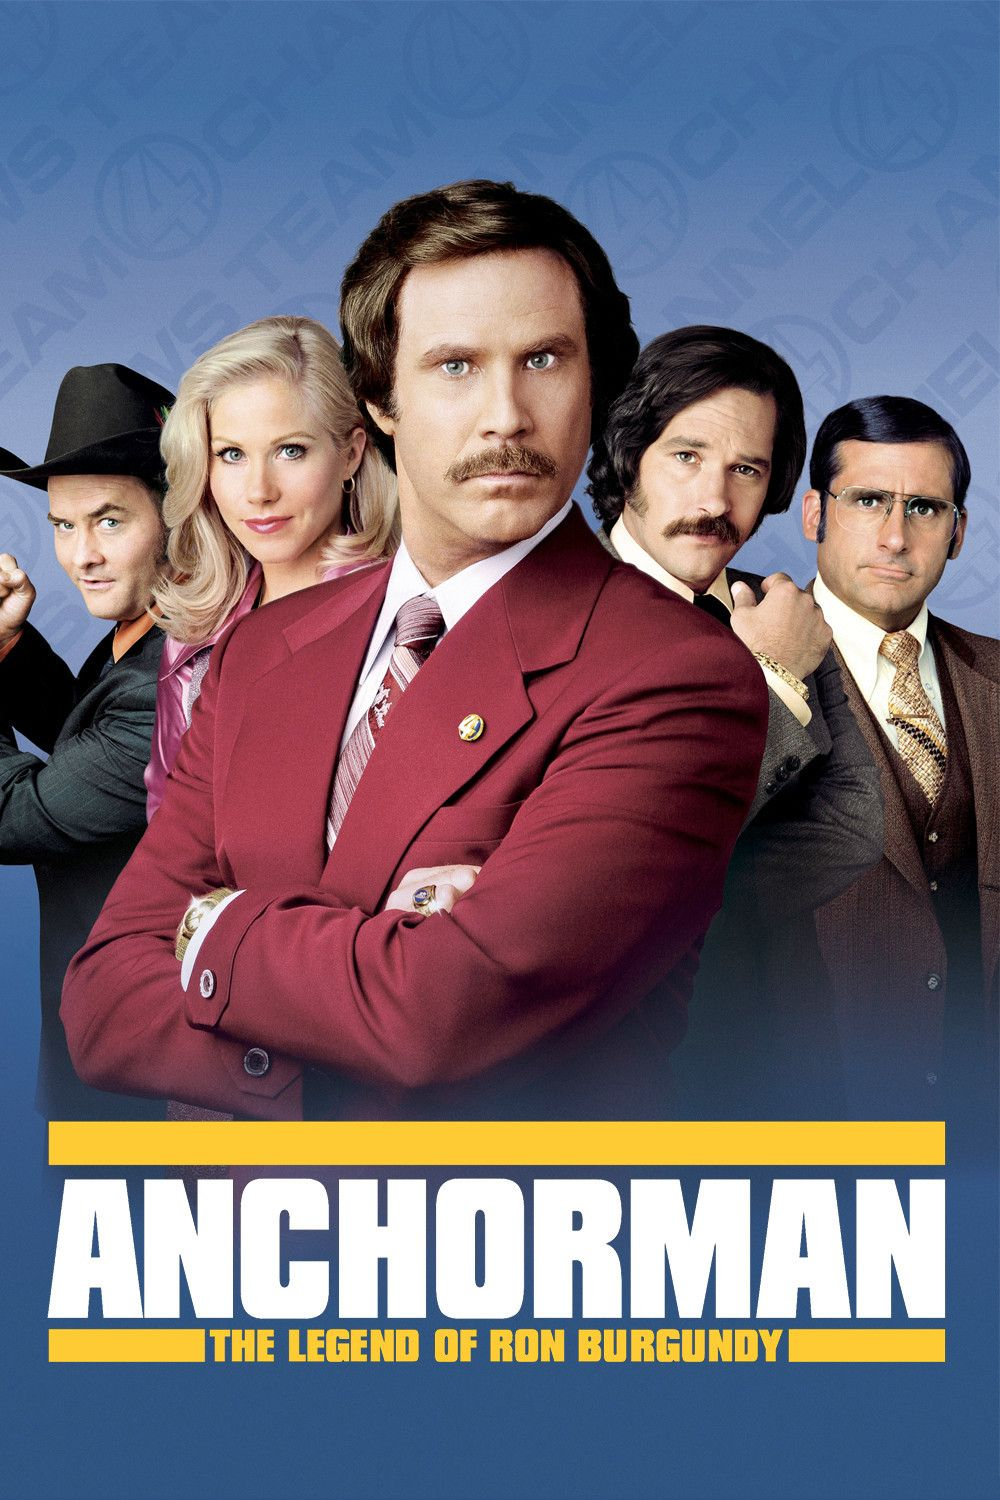 Anchorman The Legend of Ron Burgundy (2004) Click Image